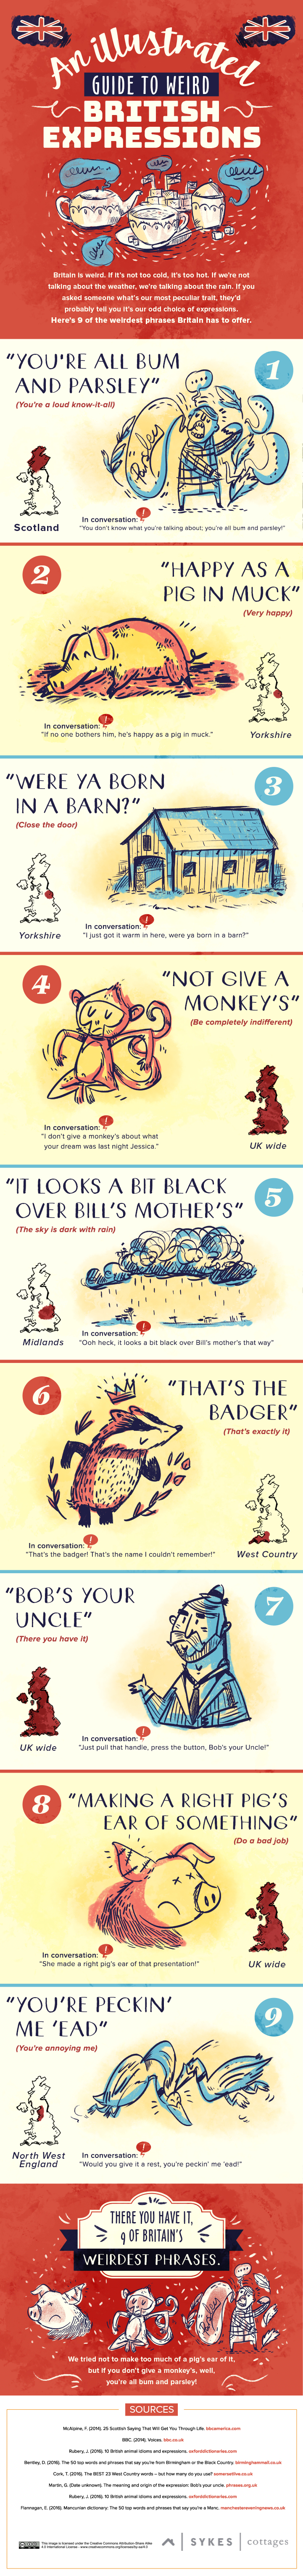 9 Weird British Expressions Illustrated